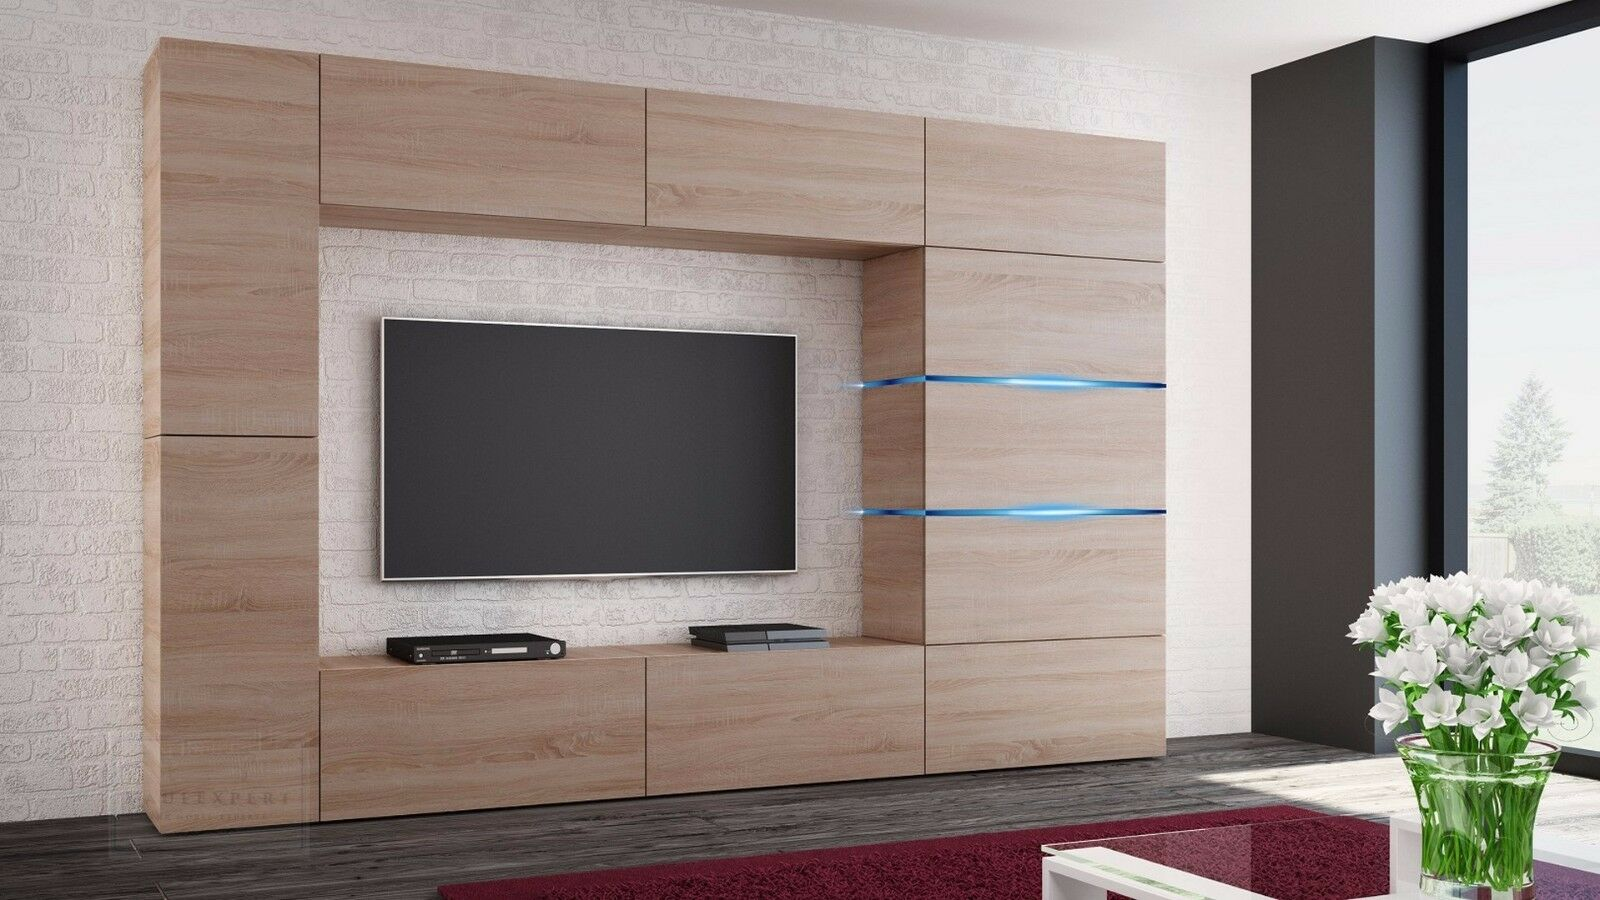 wohnwand shadow sonoma eiche matt anbauwand mediawand schrankwand mirage galaxy eur 679 00. Black Bedroom Furniture Sets. Home Design Ideas